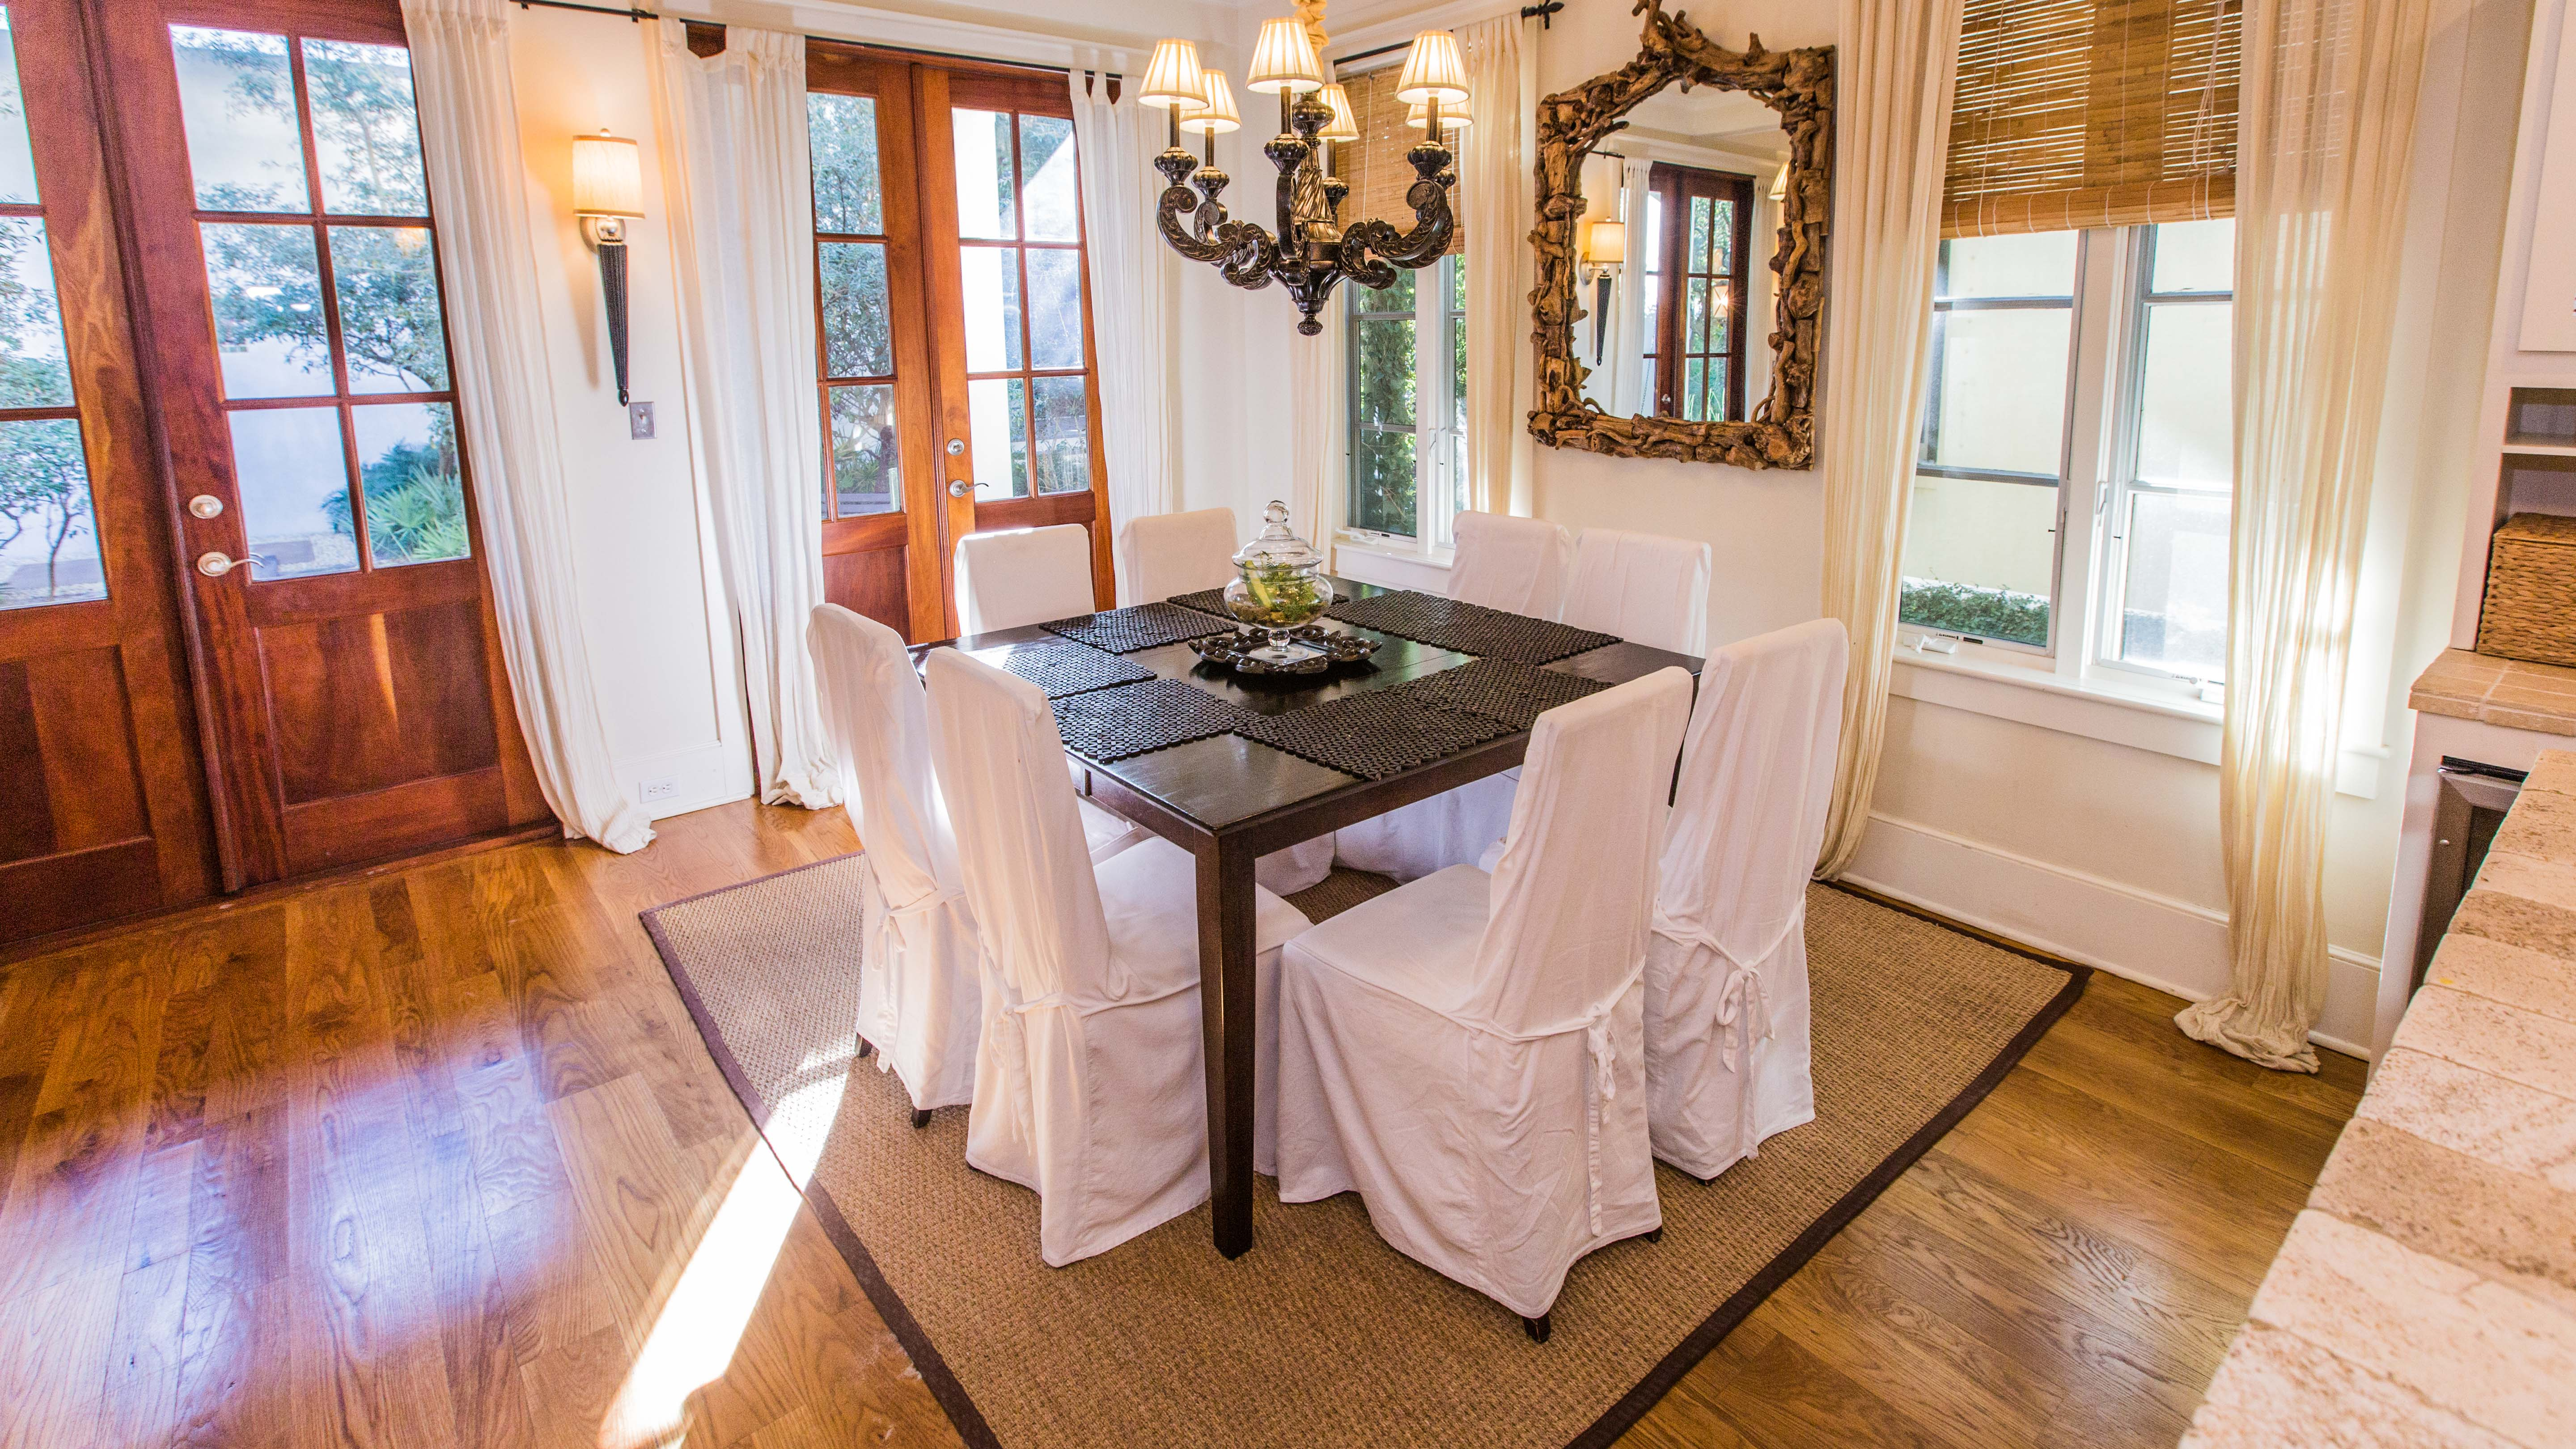 Square table seats 8 and is easily accessible to the kitchen